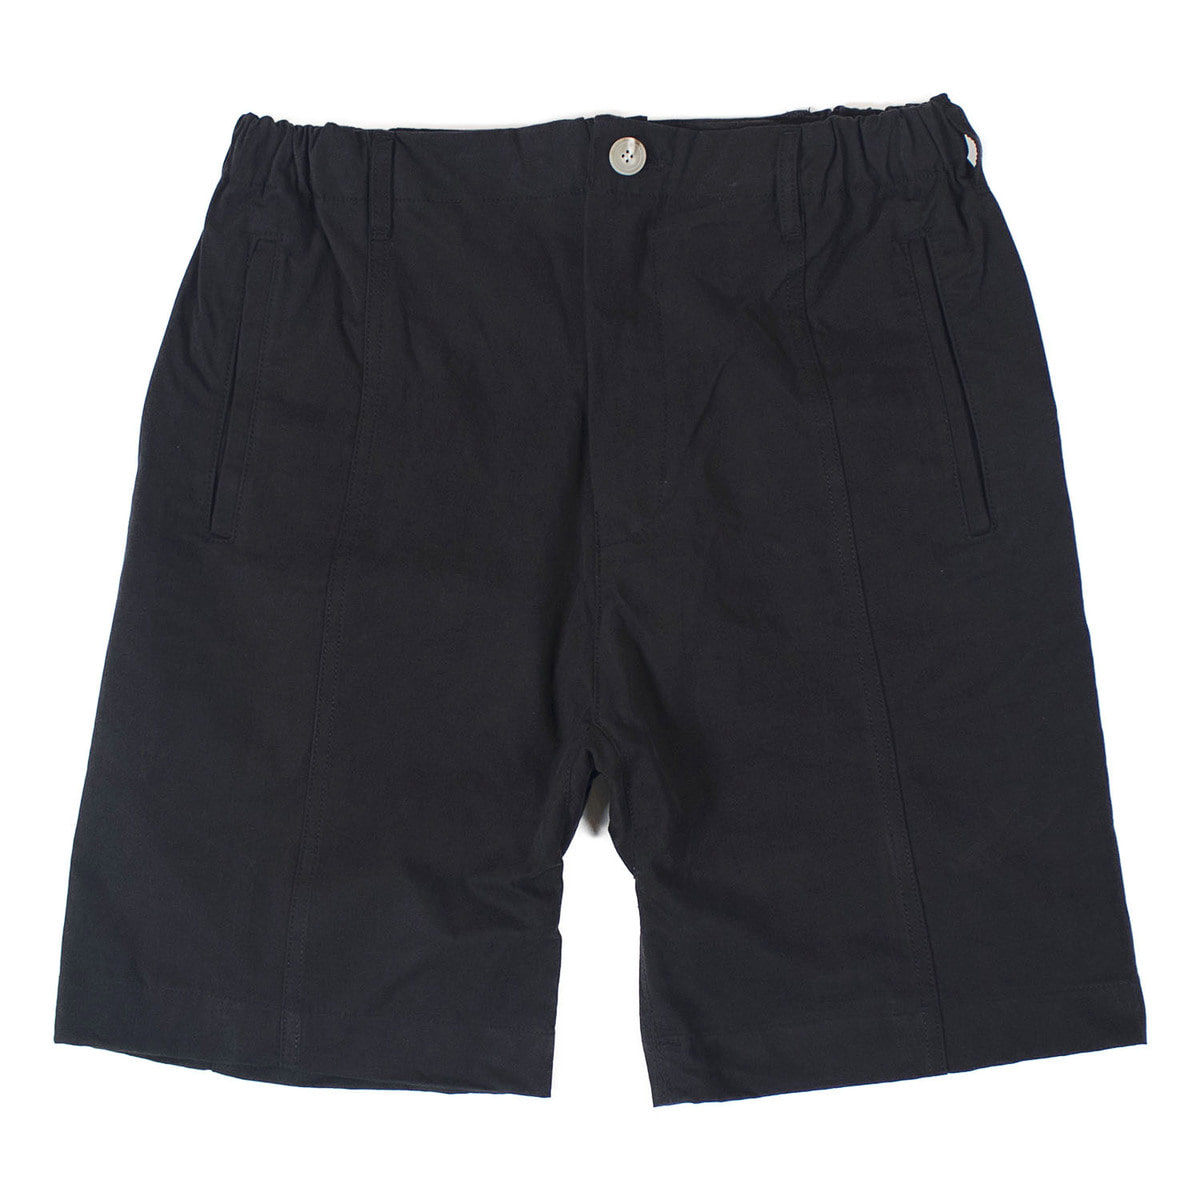 Semi Baggy Shorts (Black)